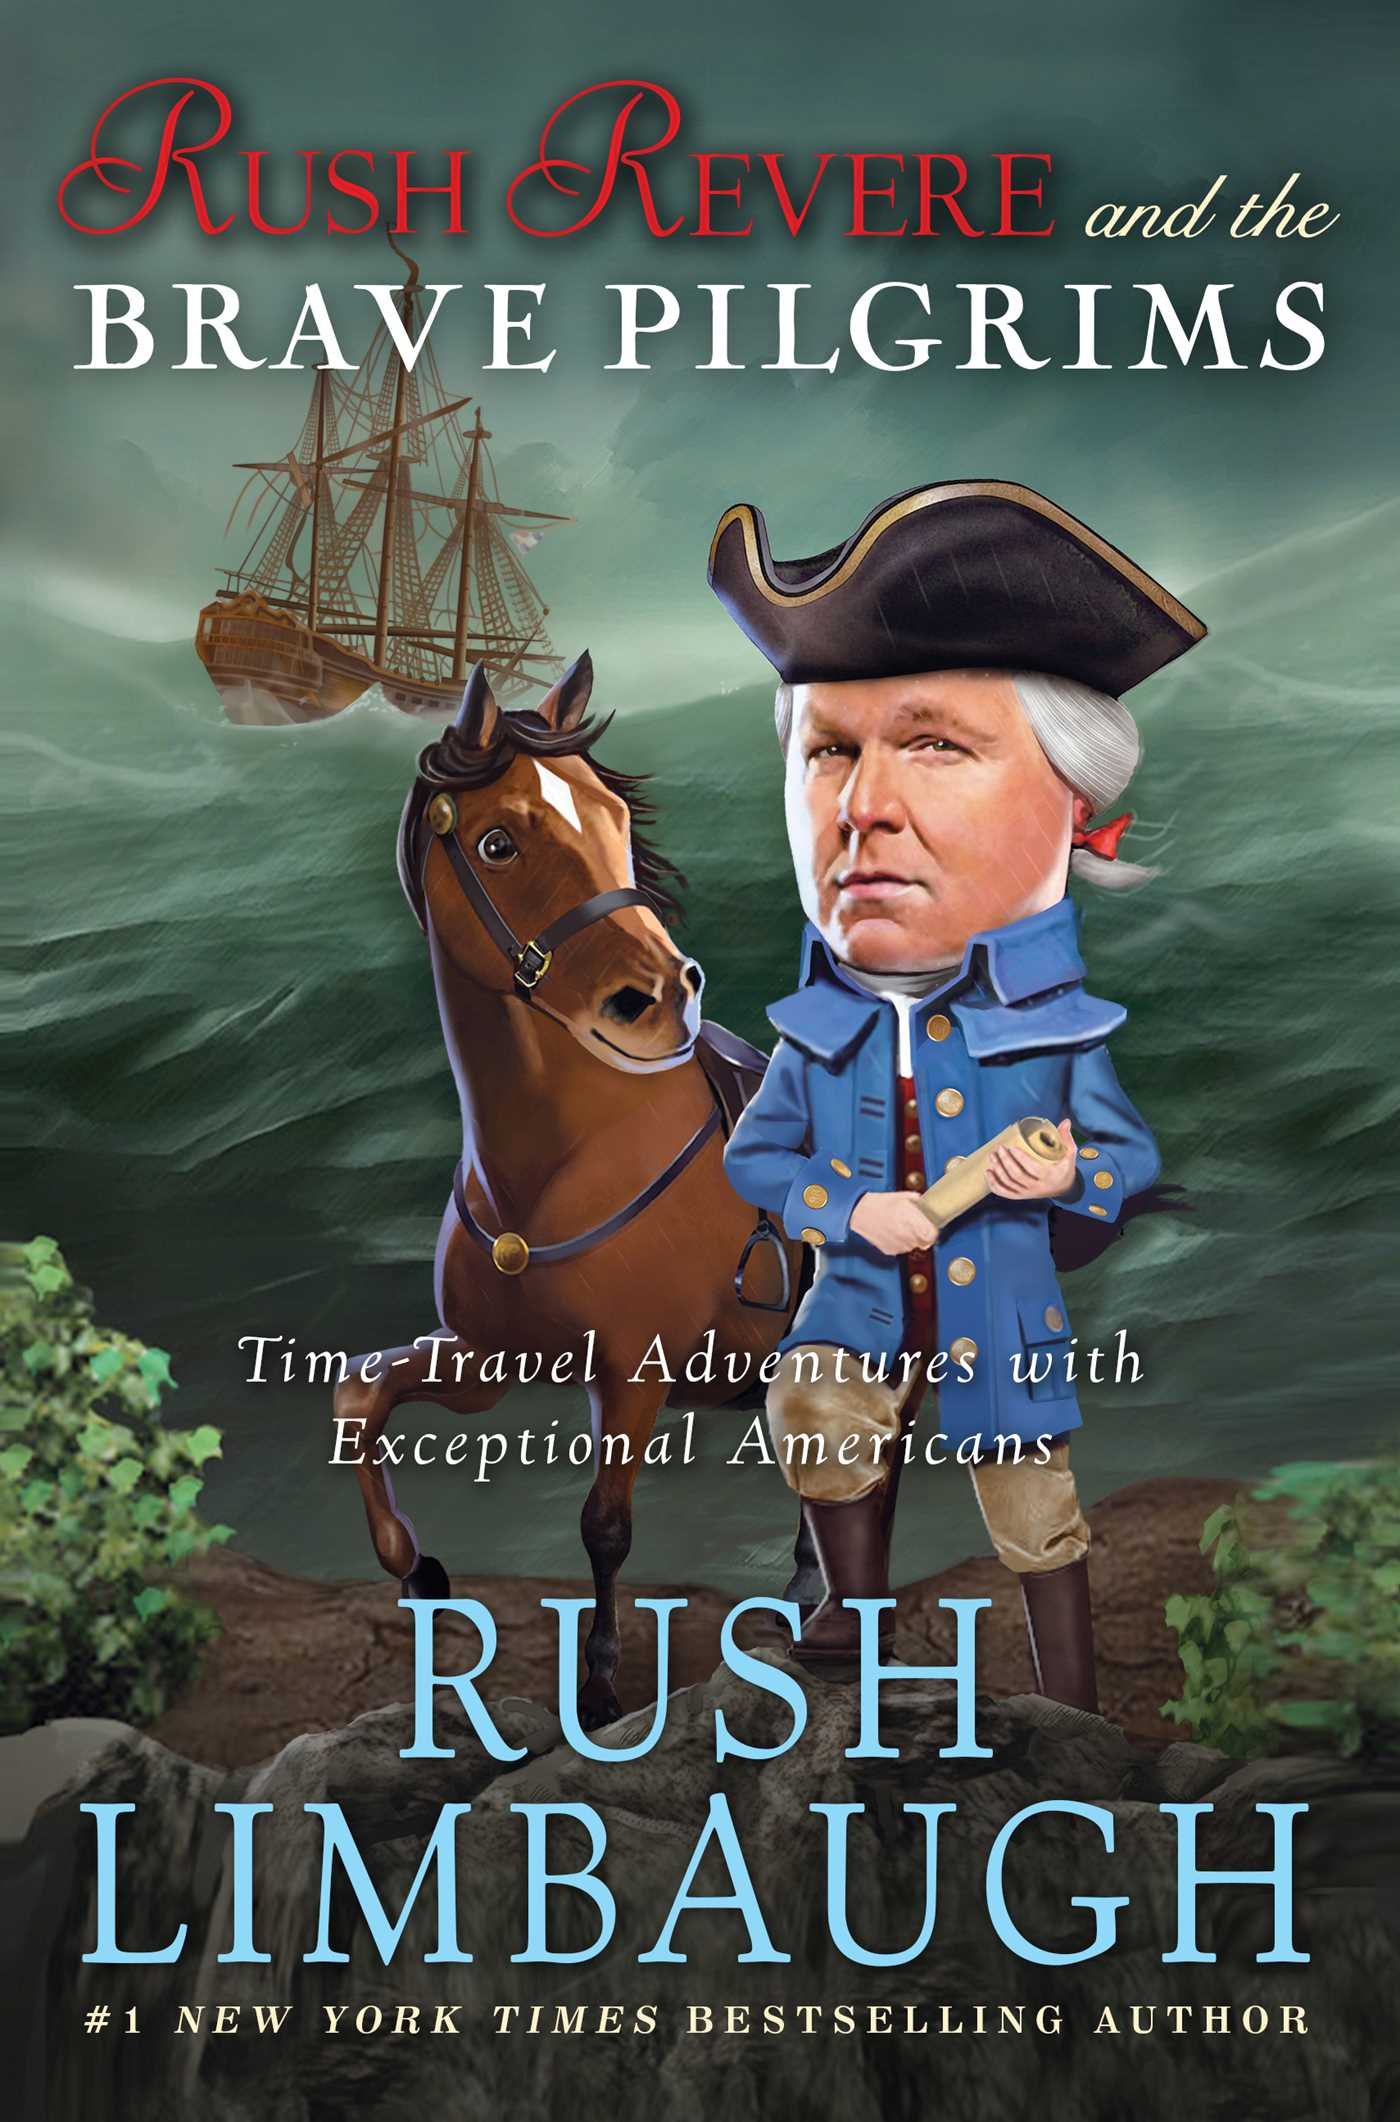 Rush revere and the brave pilgrims 9781476755915 hr